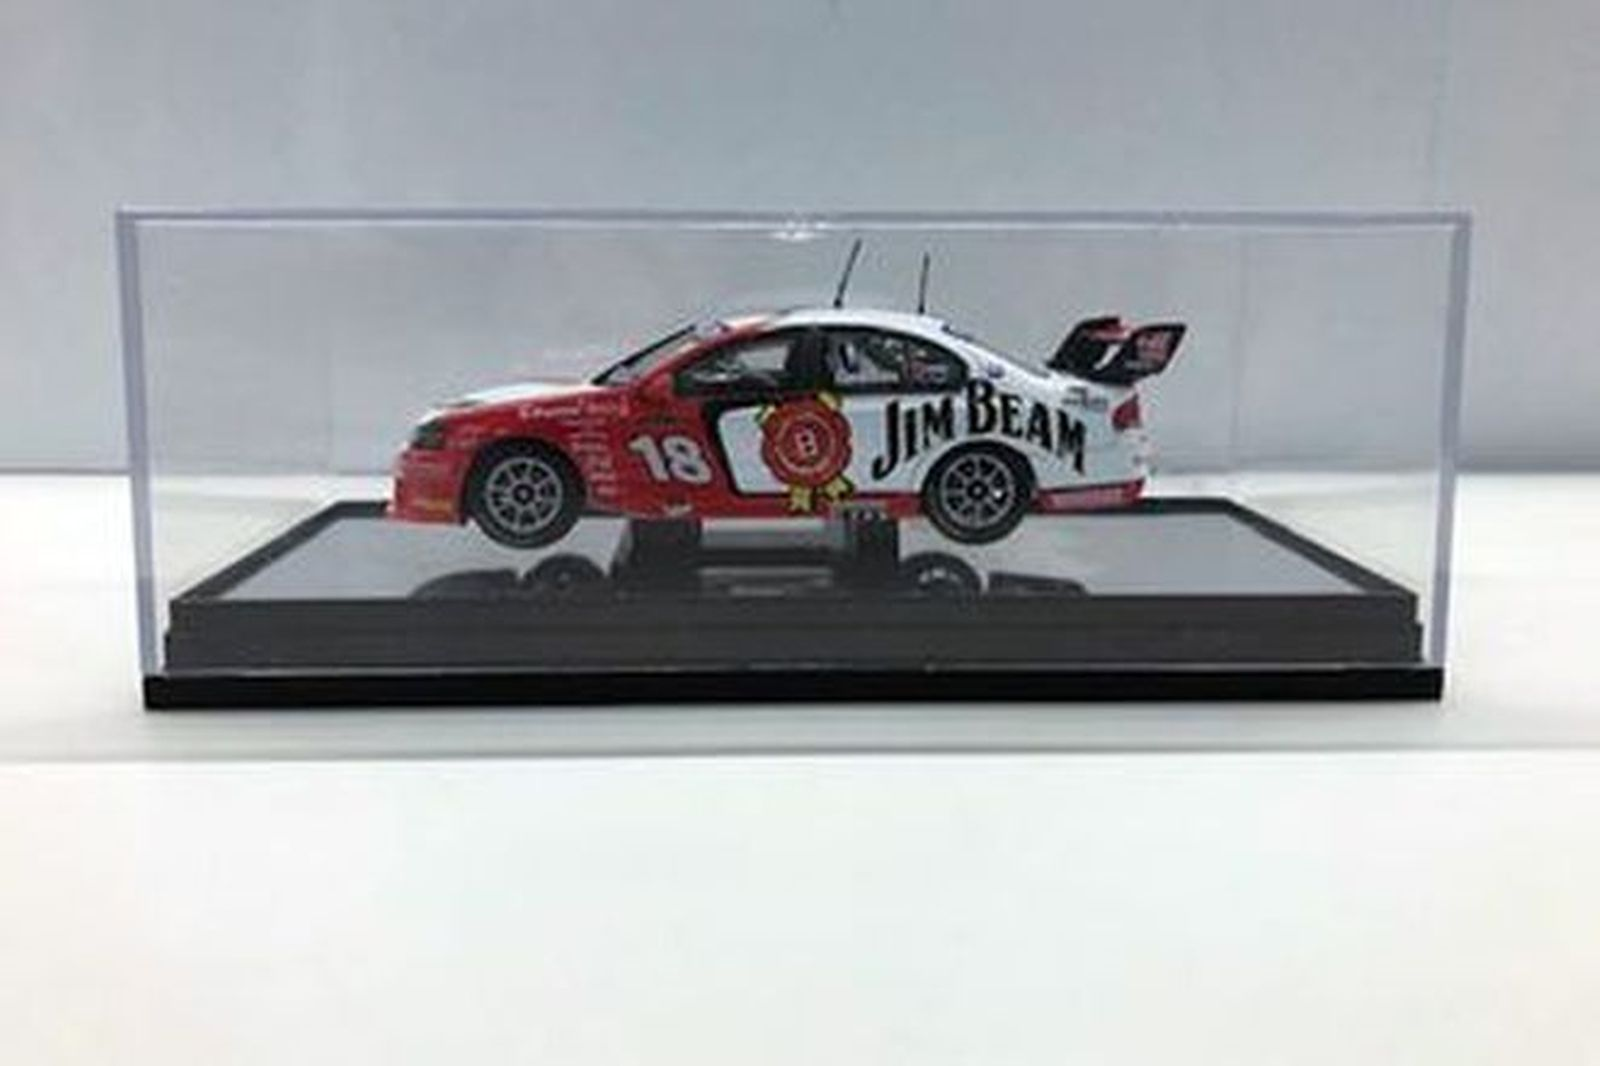 Model car - Model car - Davidson/ Johnson Jim Beam #18 Scale 1:43